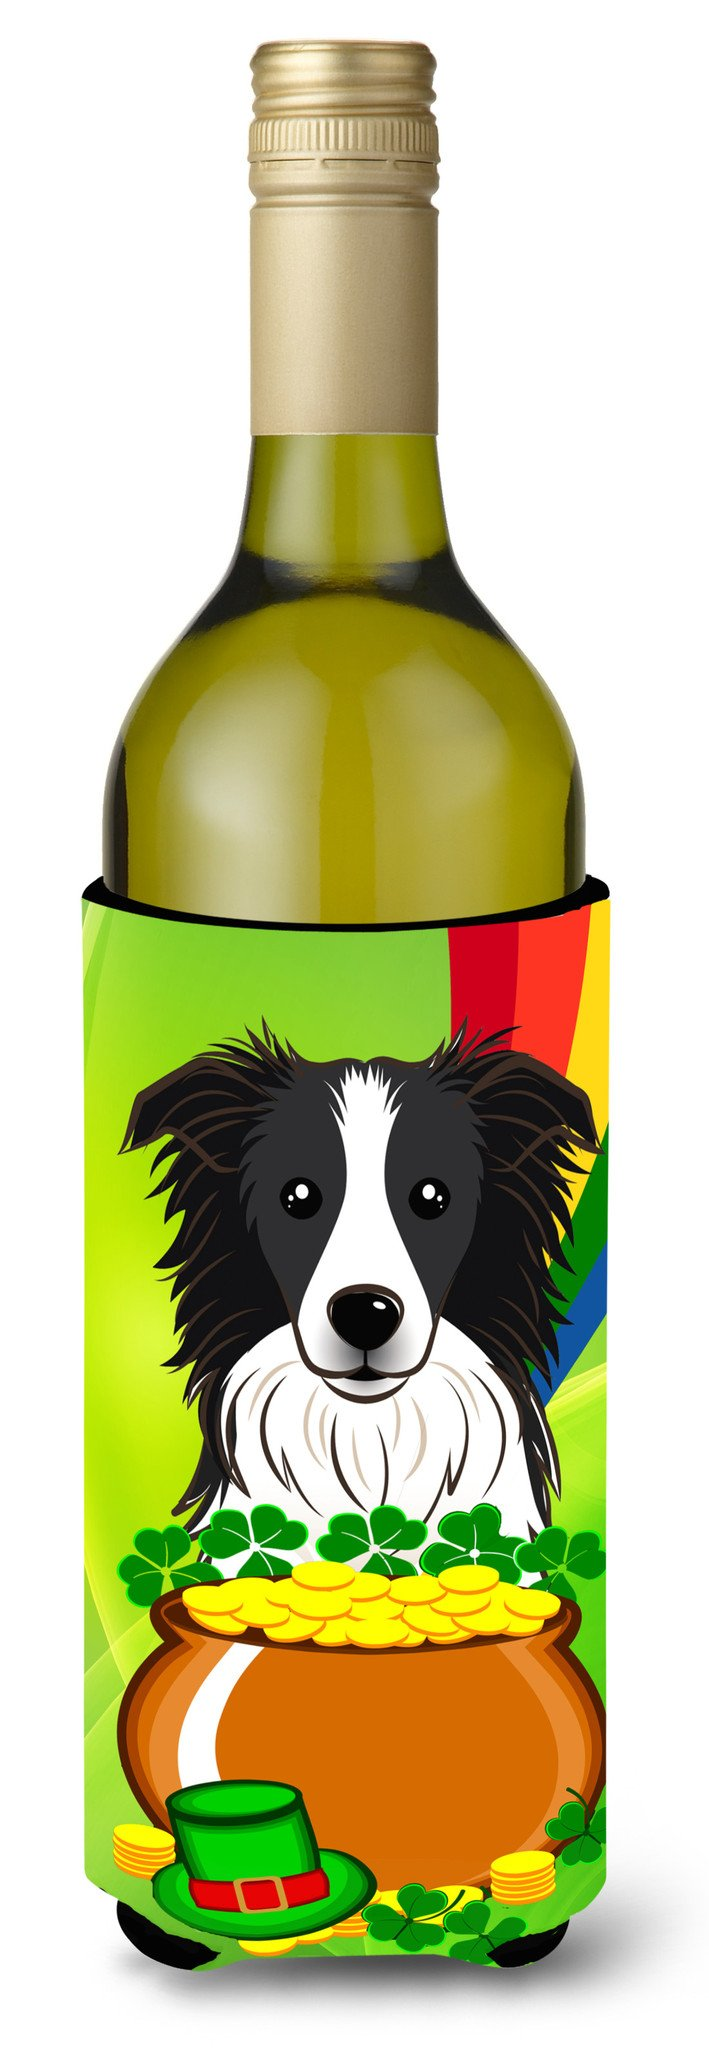 Border Collie St. Patrick's Day Wine Bottle Beverage Insulator Hugger BB1985LITERK by Caroline's Treasures